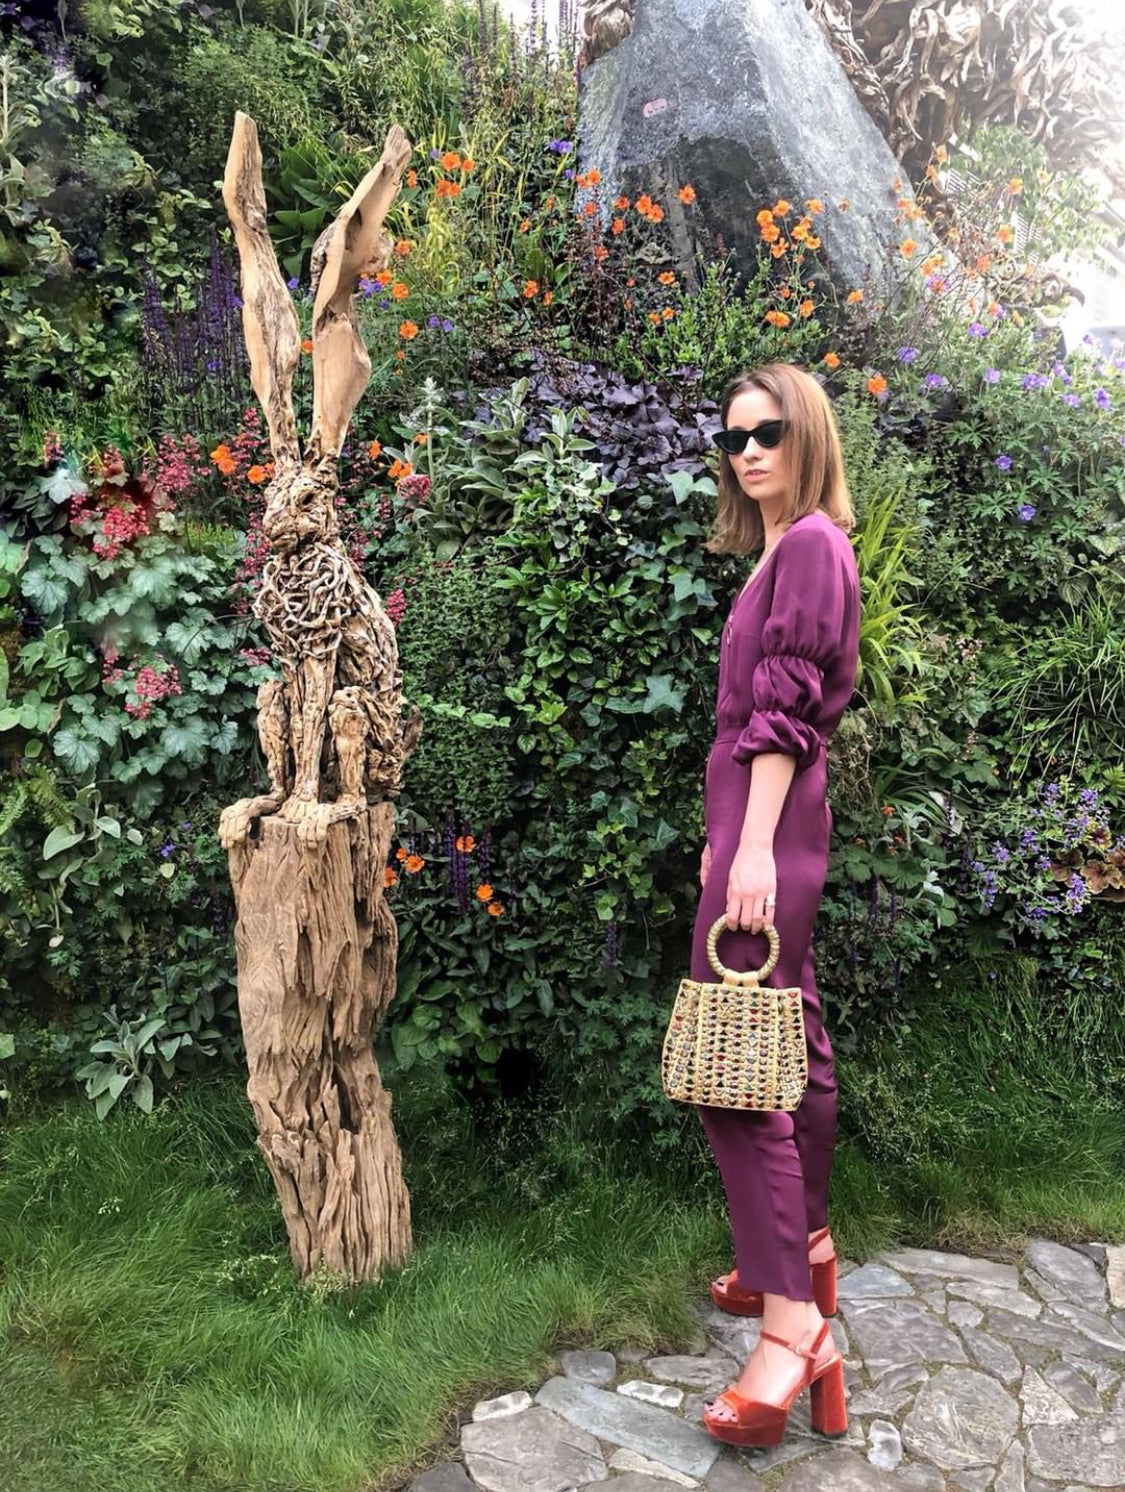 RHS CHELSEA FLOWER SHOW THE LONDON CHATTER MAE CASSIDY KELLY EASTWOOD REKHA REFLECT LUXURY ACCESSORIES EMBELLISHED UNIQUE